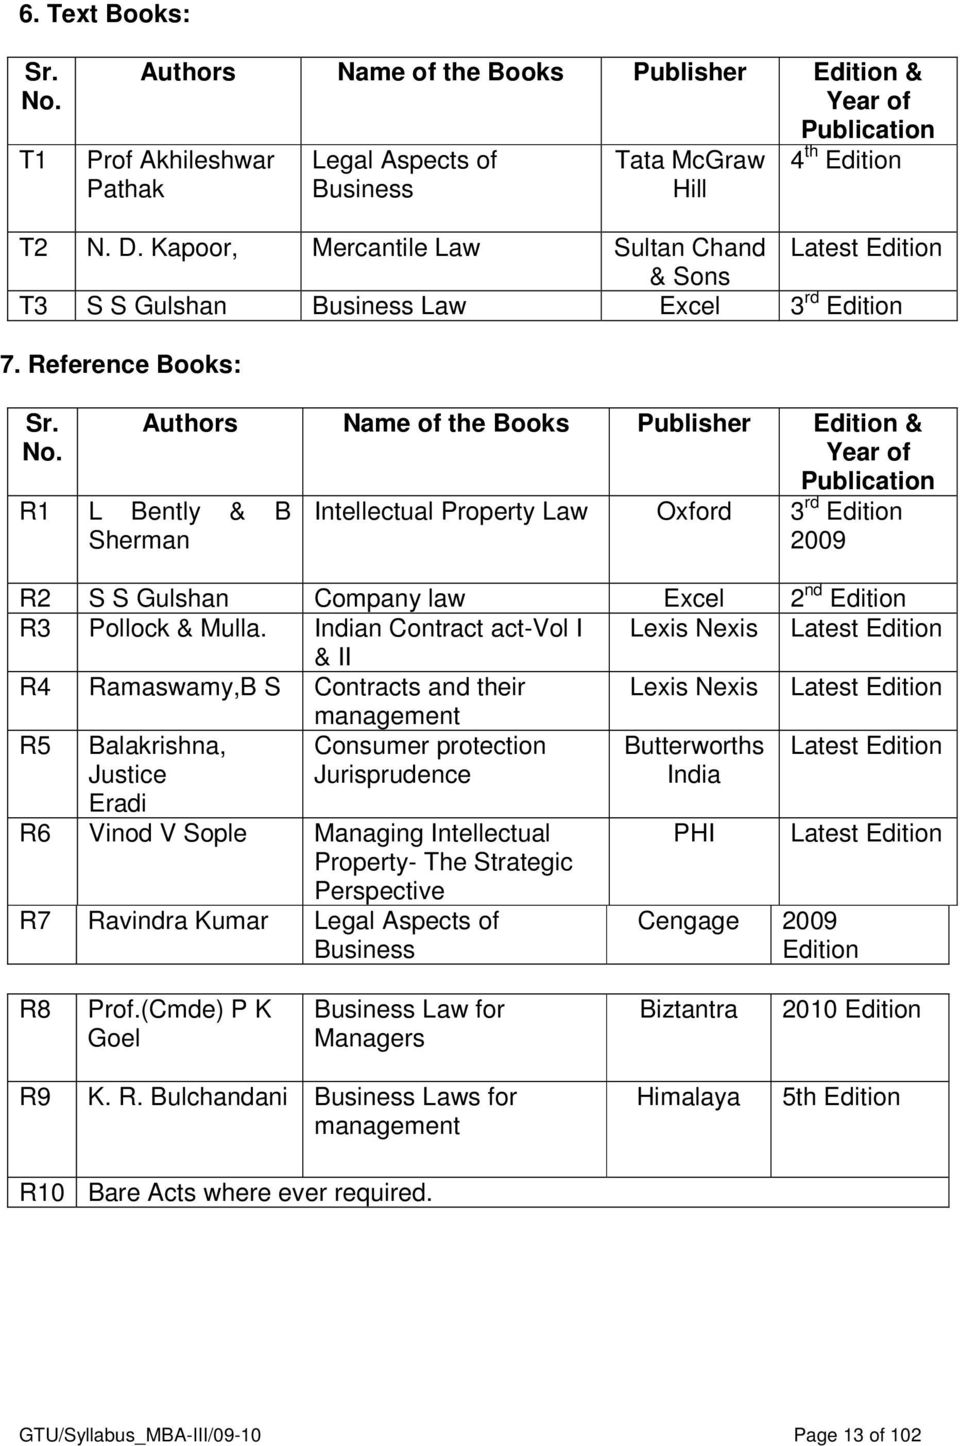 Authors Name of the Books Publisher Edition & Year of Publication R1 L Bently & B Sherman Intellectual Property Law Oxford 3 rd Edition 2009 R2 S S Gulshan Company law Excel 2 nd Edition R3 Pollock &